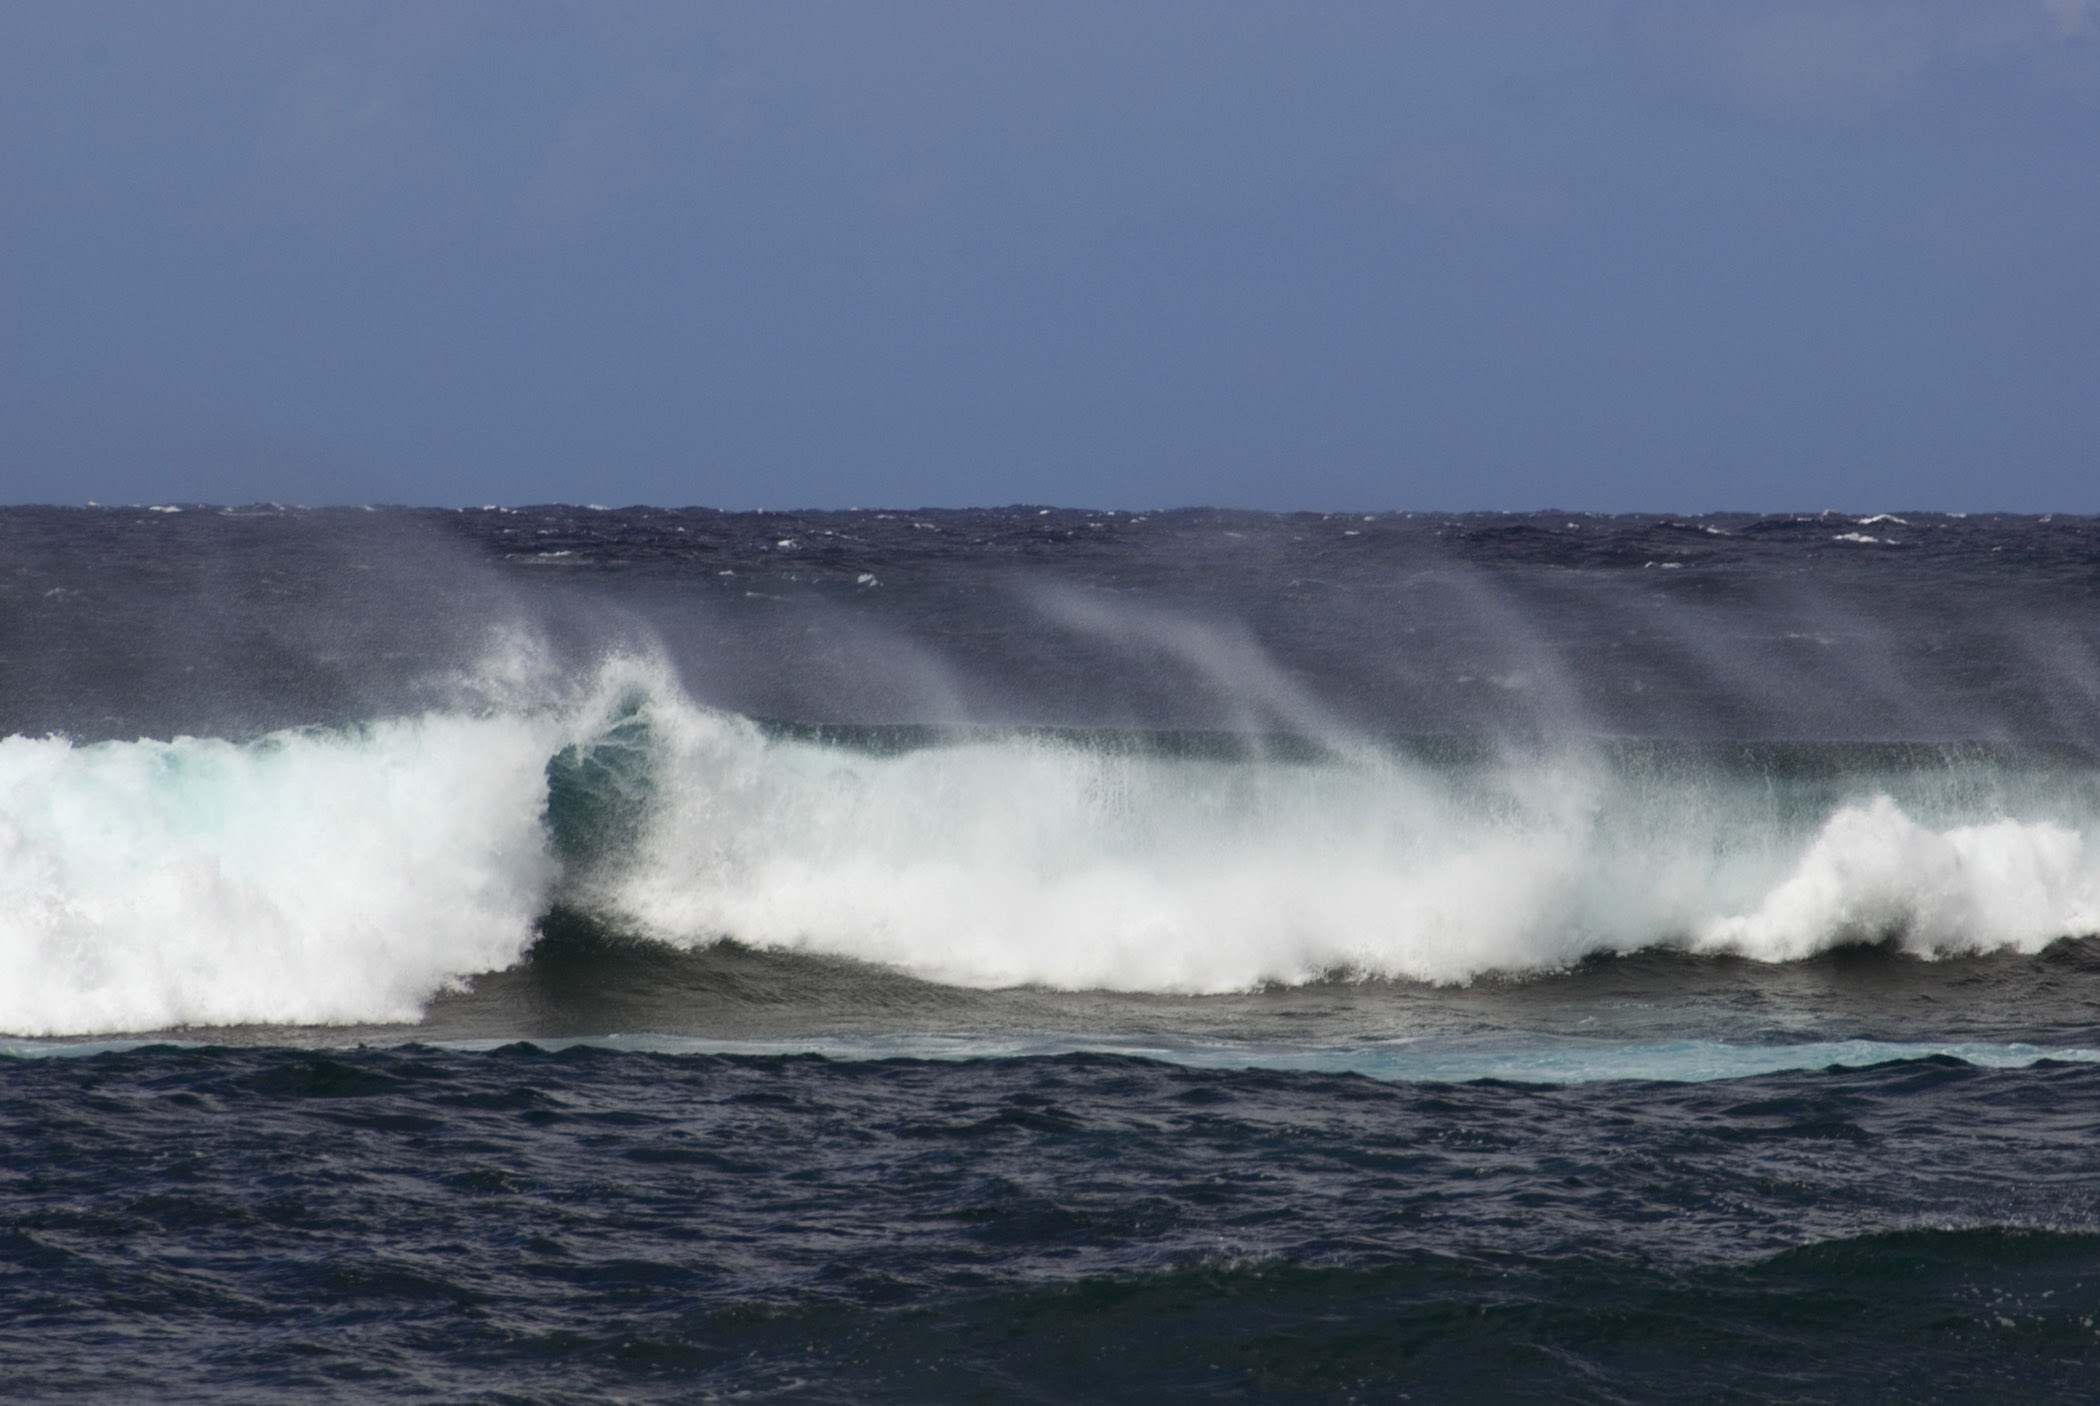 Big waves off the North Shore, Hawaii with spray whipped up by the wind, a popular area for surfers